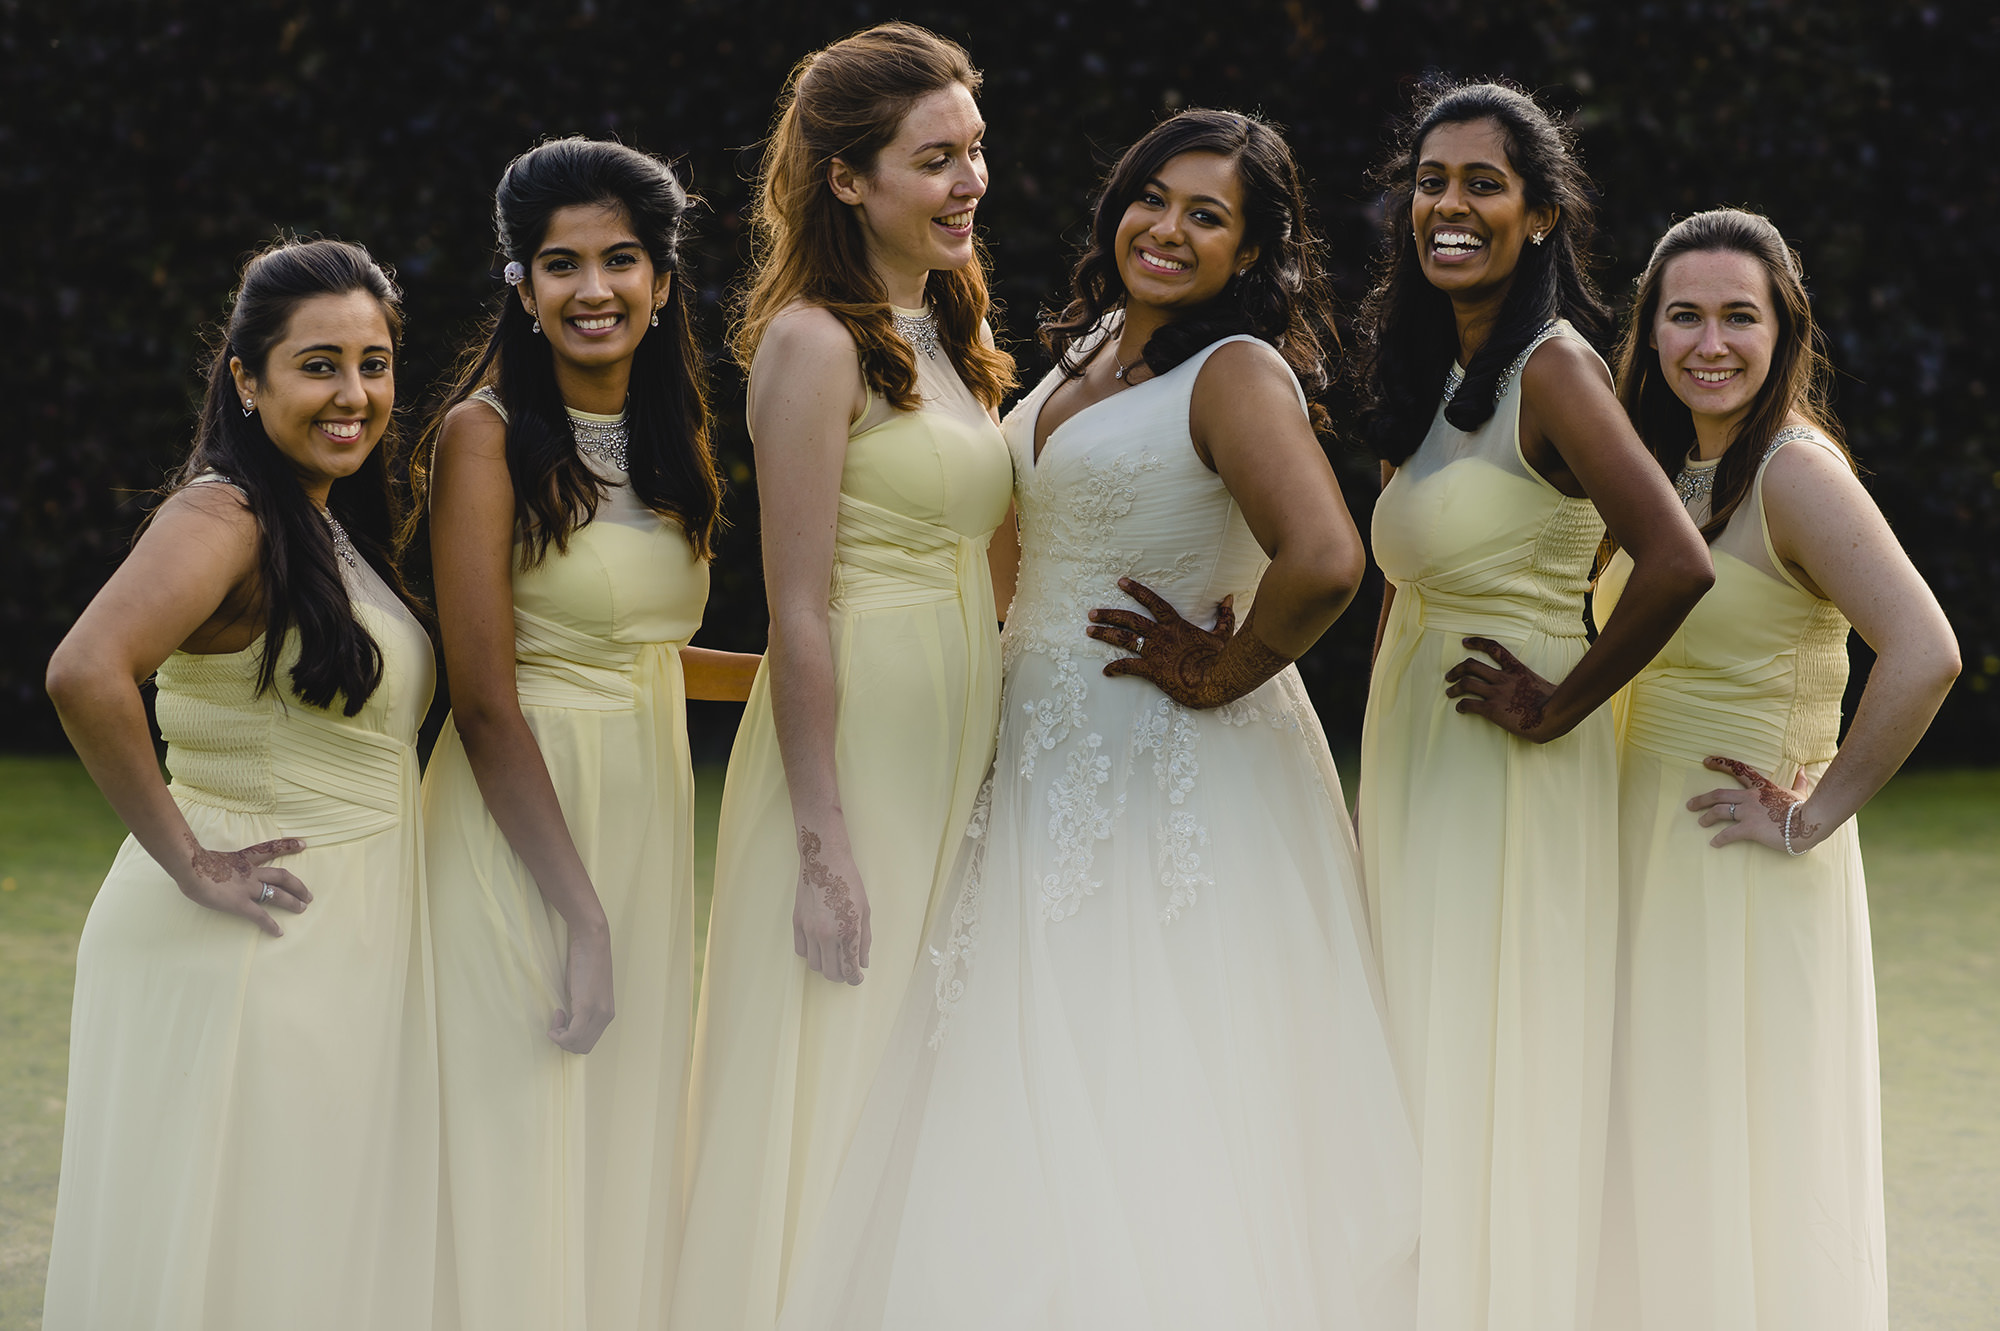 bride with her bridesmaids after the civil wedding at poundon house